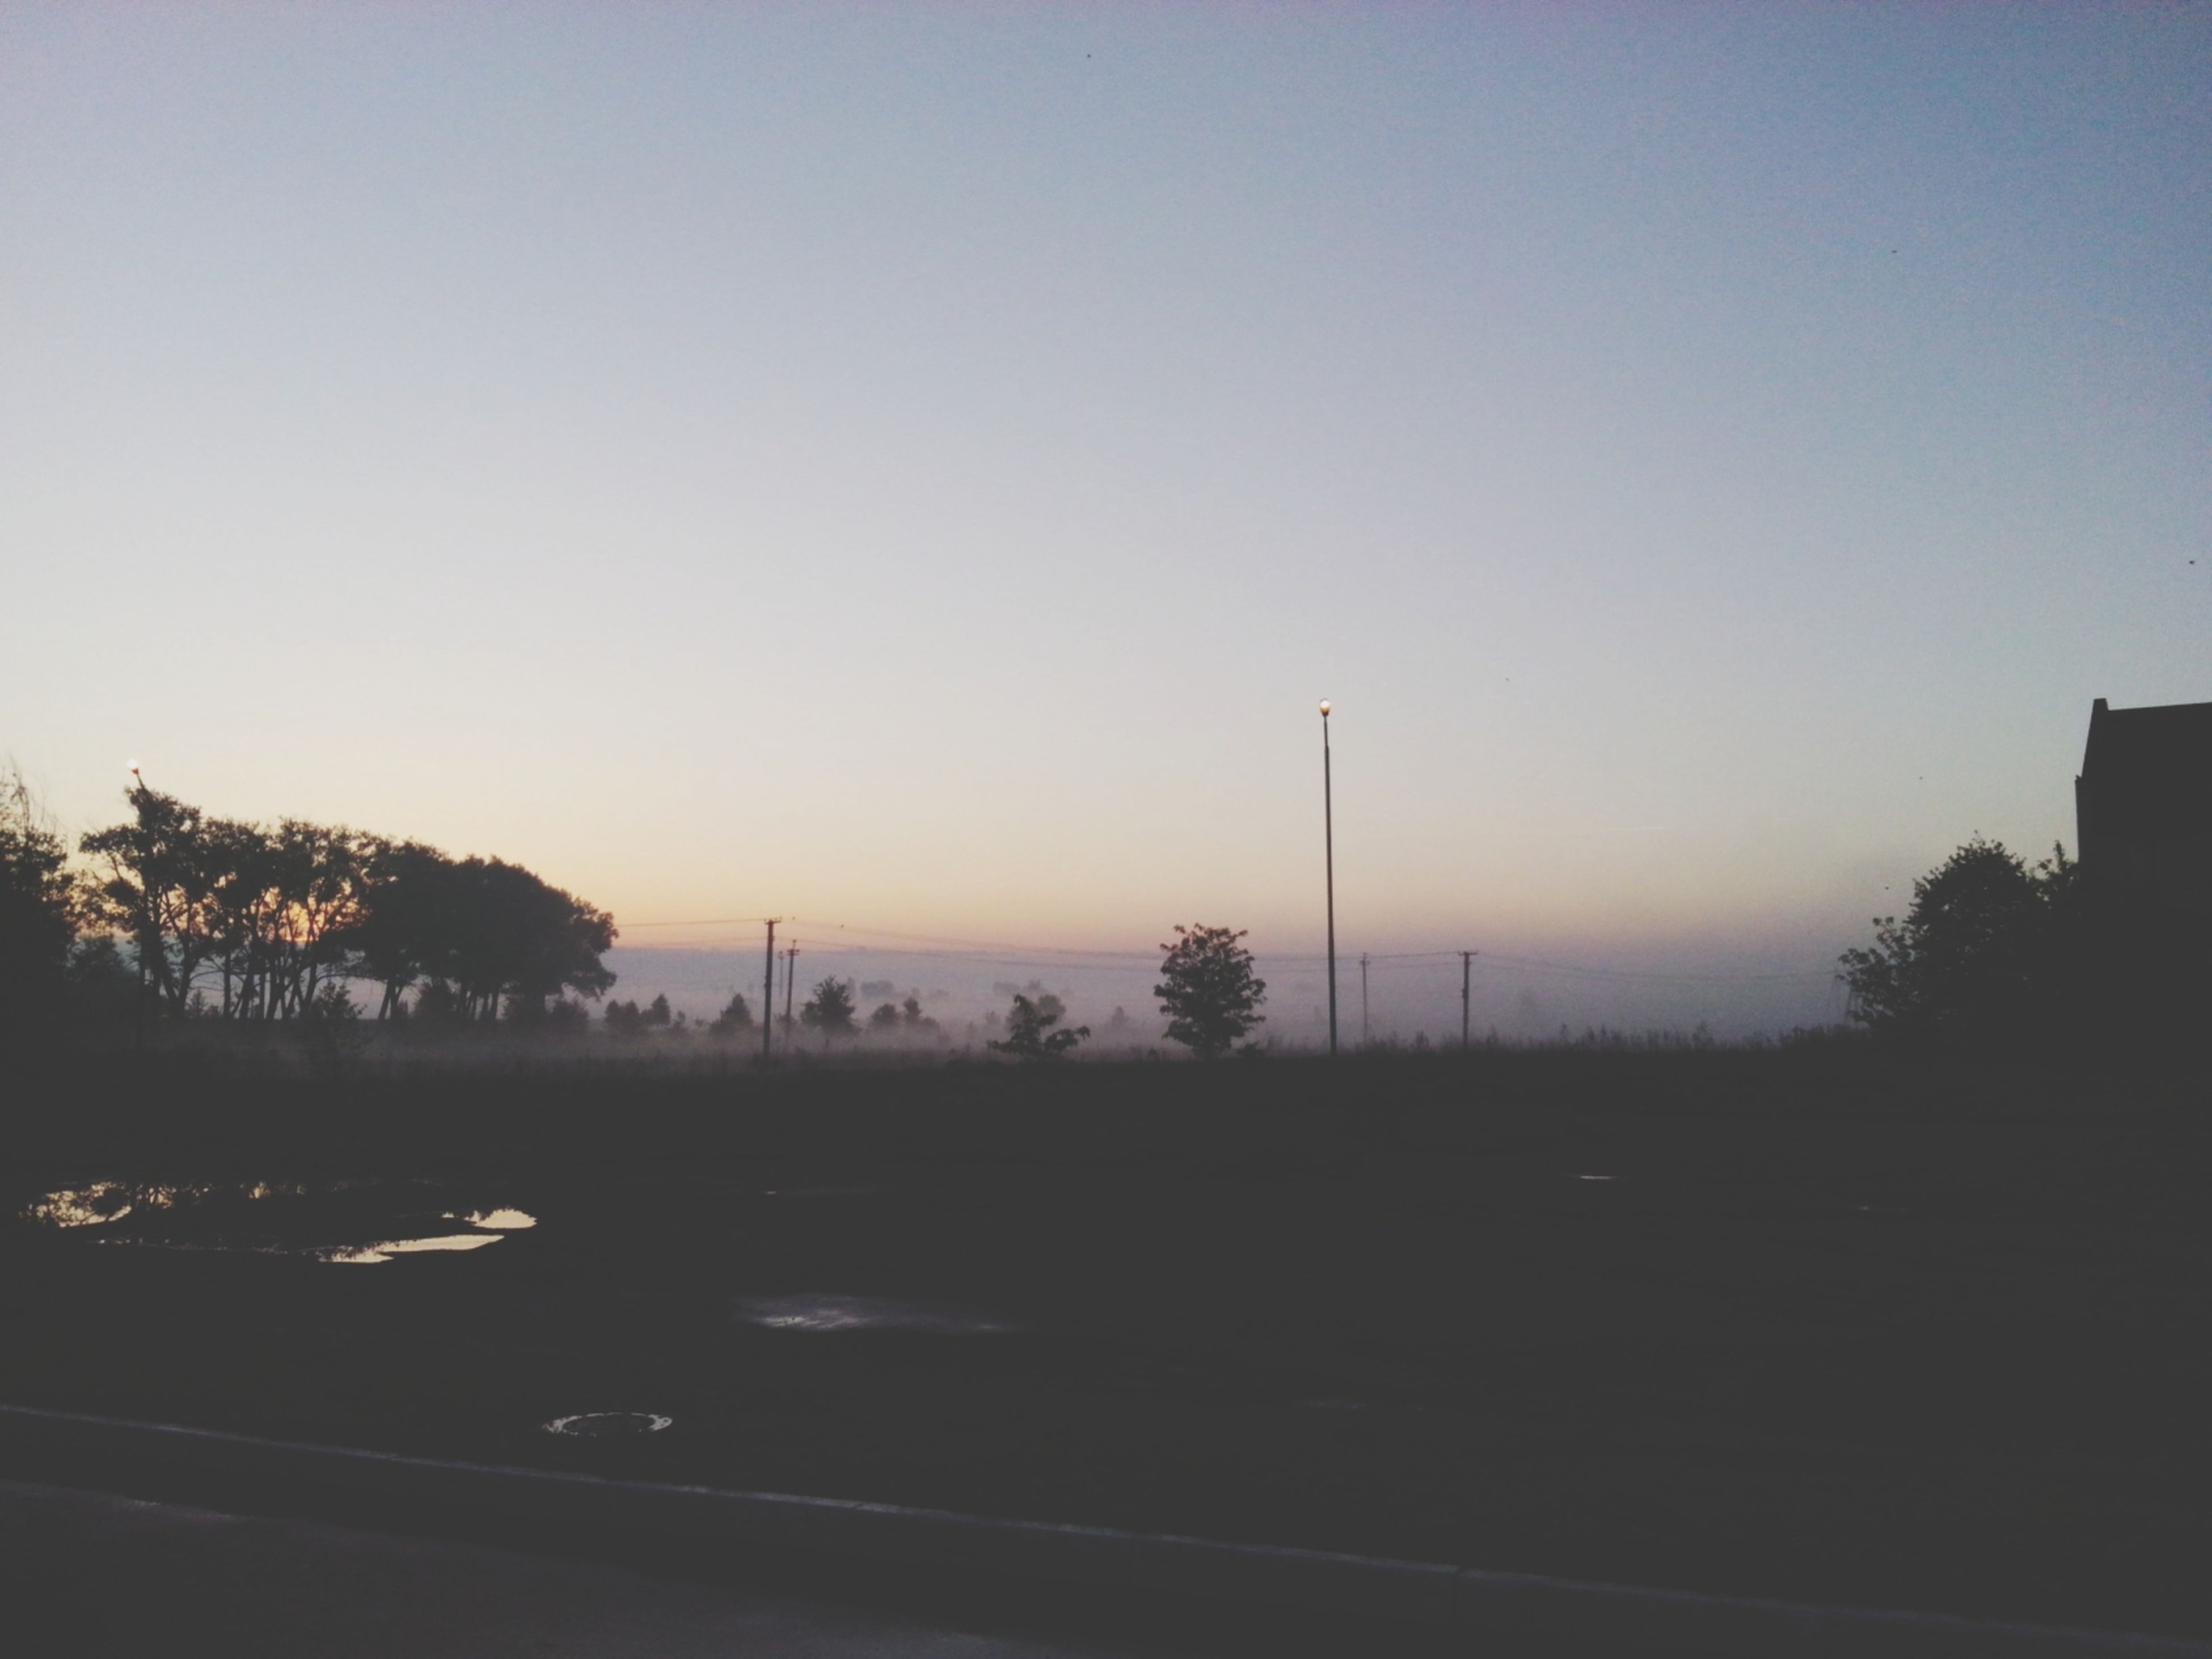 sunset, tree, copy space, clear sky, silhouette, tranquility, tranquil scene, scenics, beauty in nature, nature, orange color, landscape, sky, transportation, outdoors, dusk, no people, growth, idyllic, road